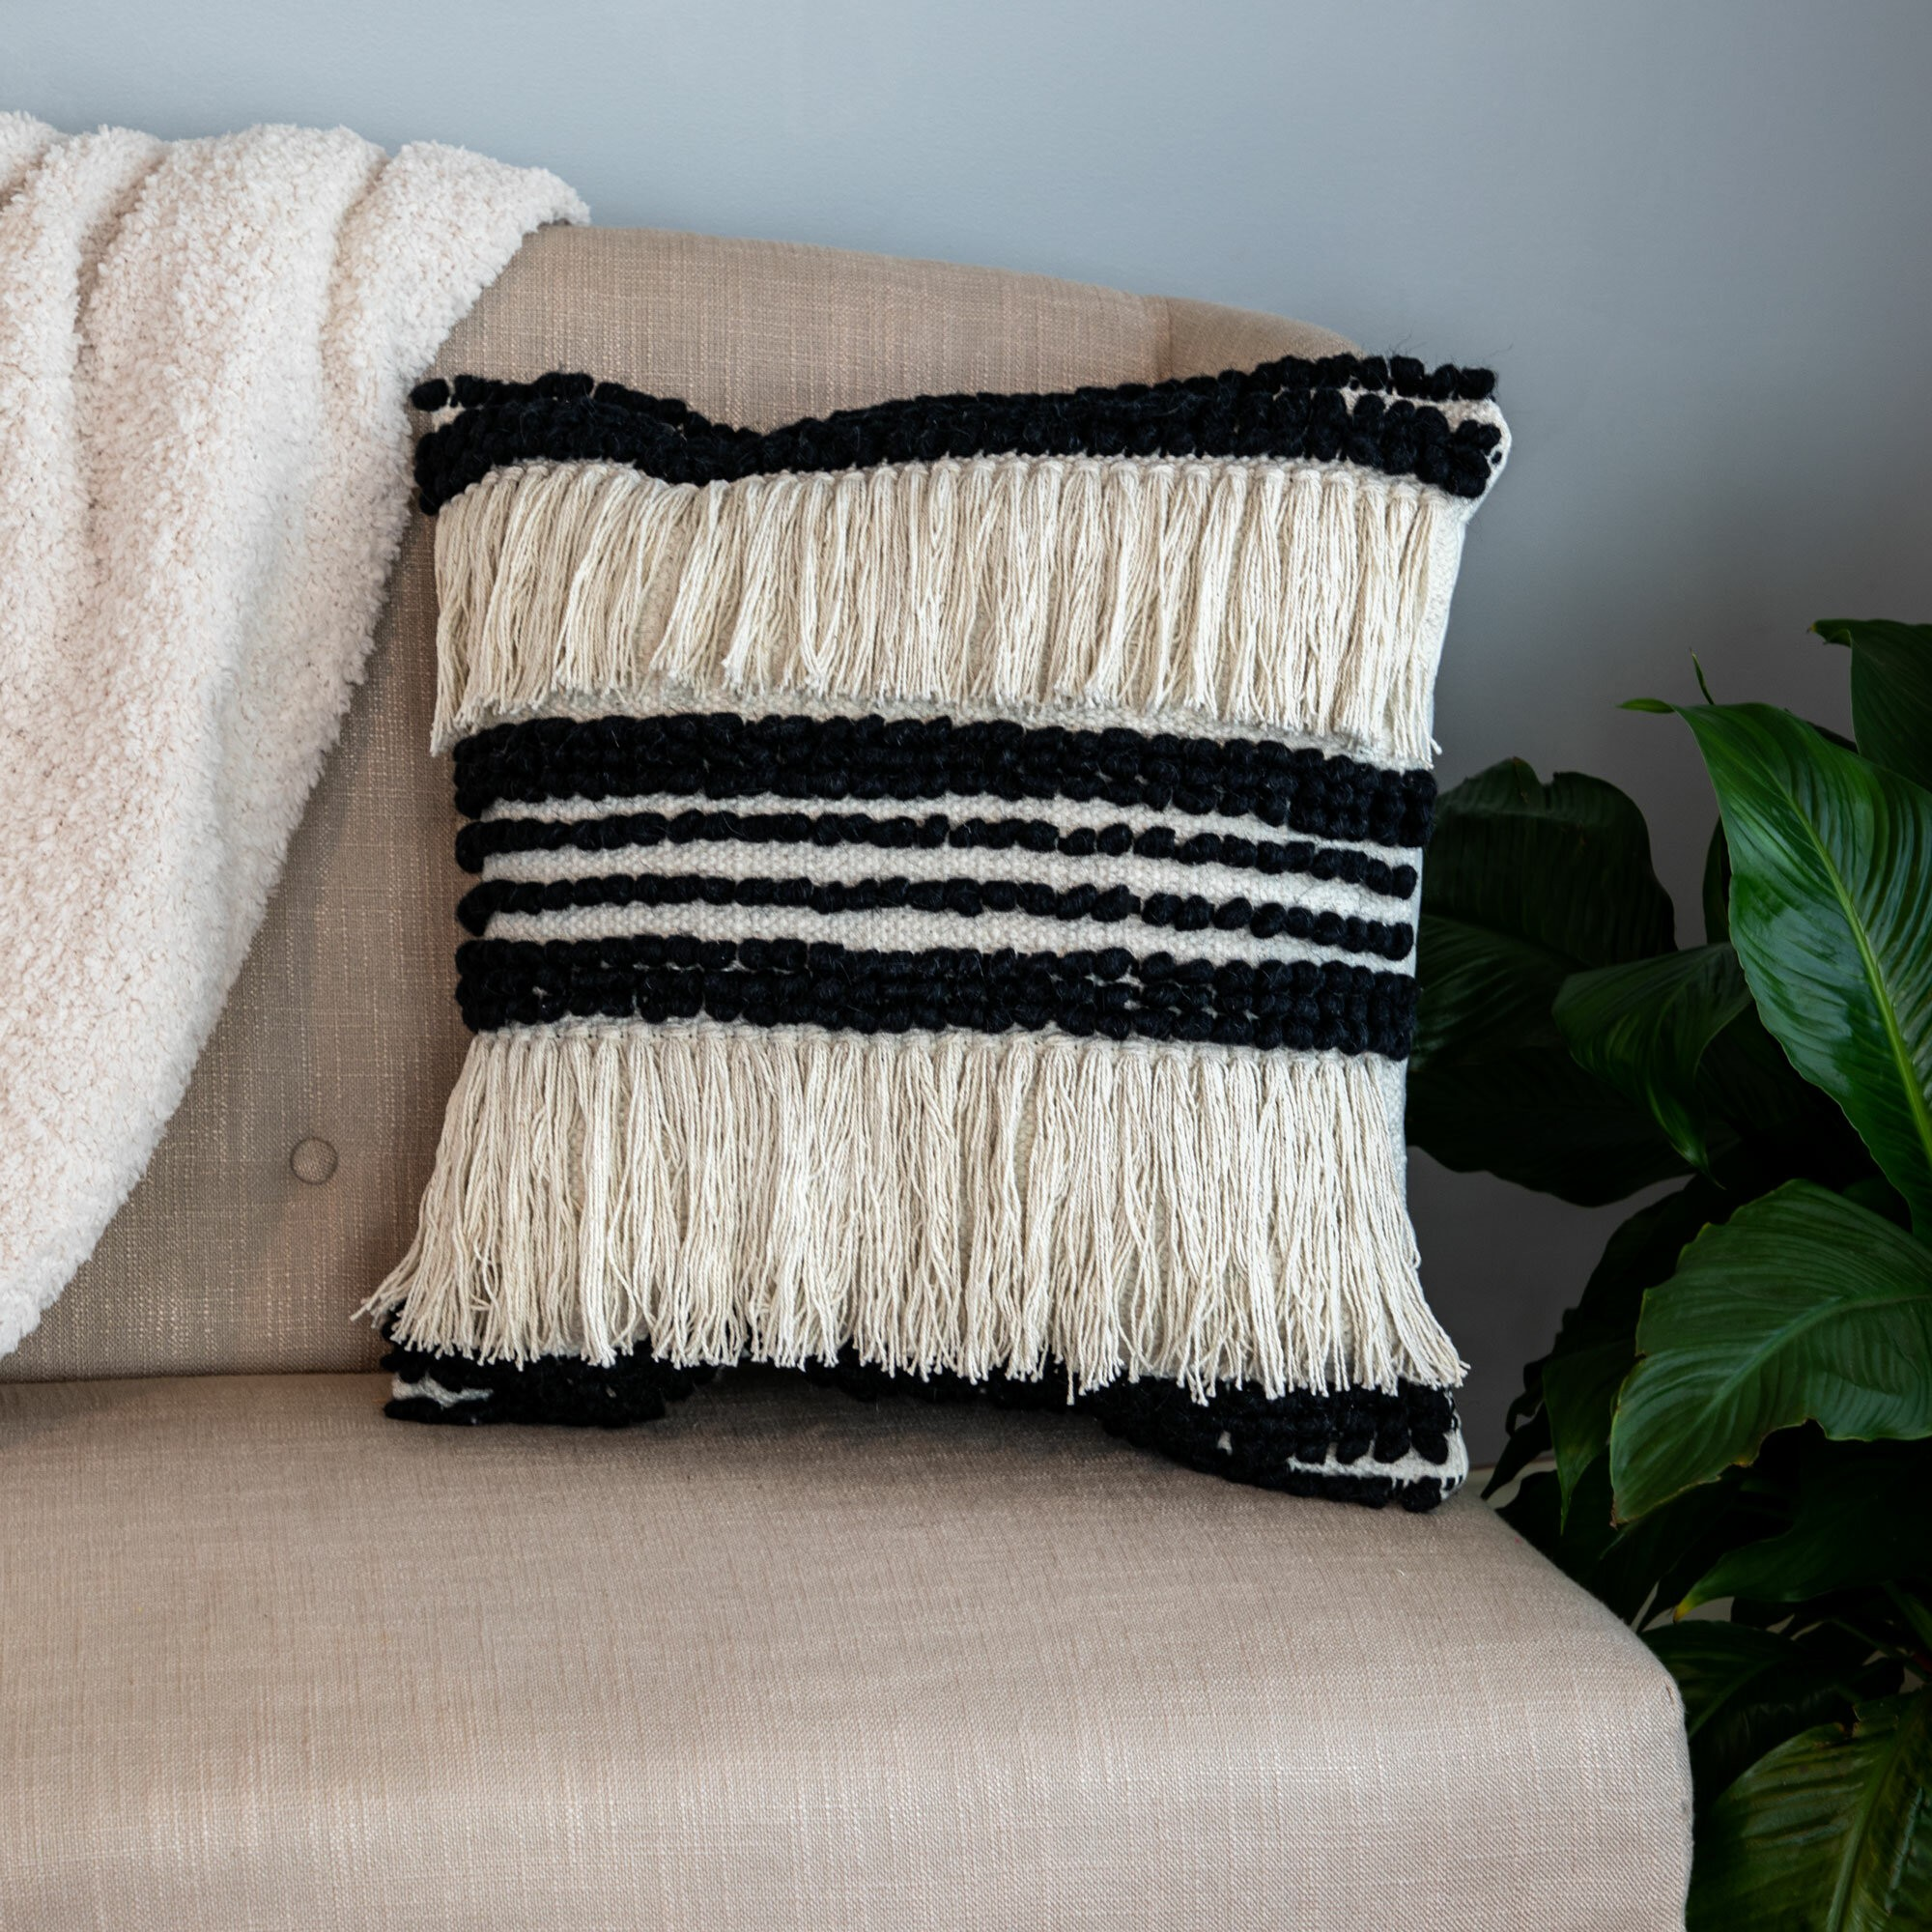 10 Best Pillows Throws For 2021 Ideas On Foter